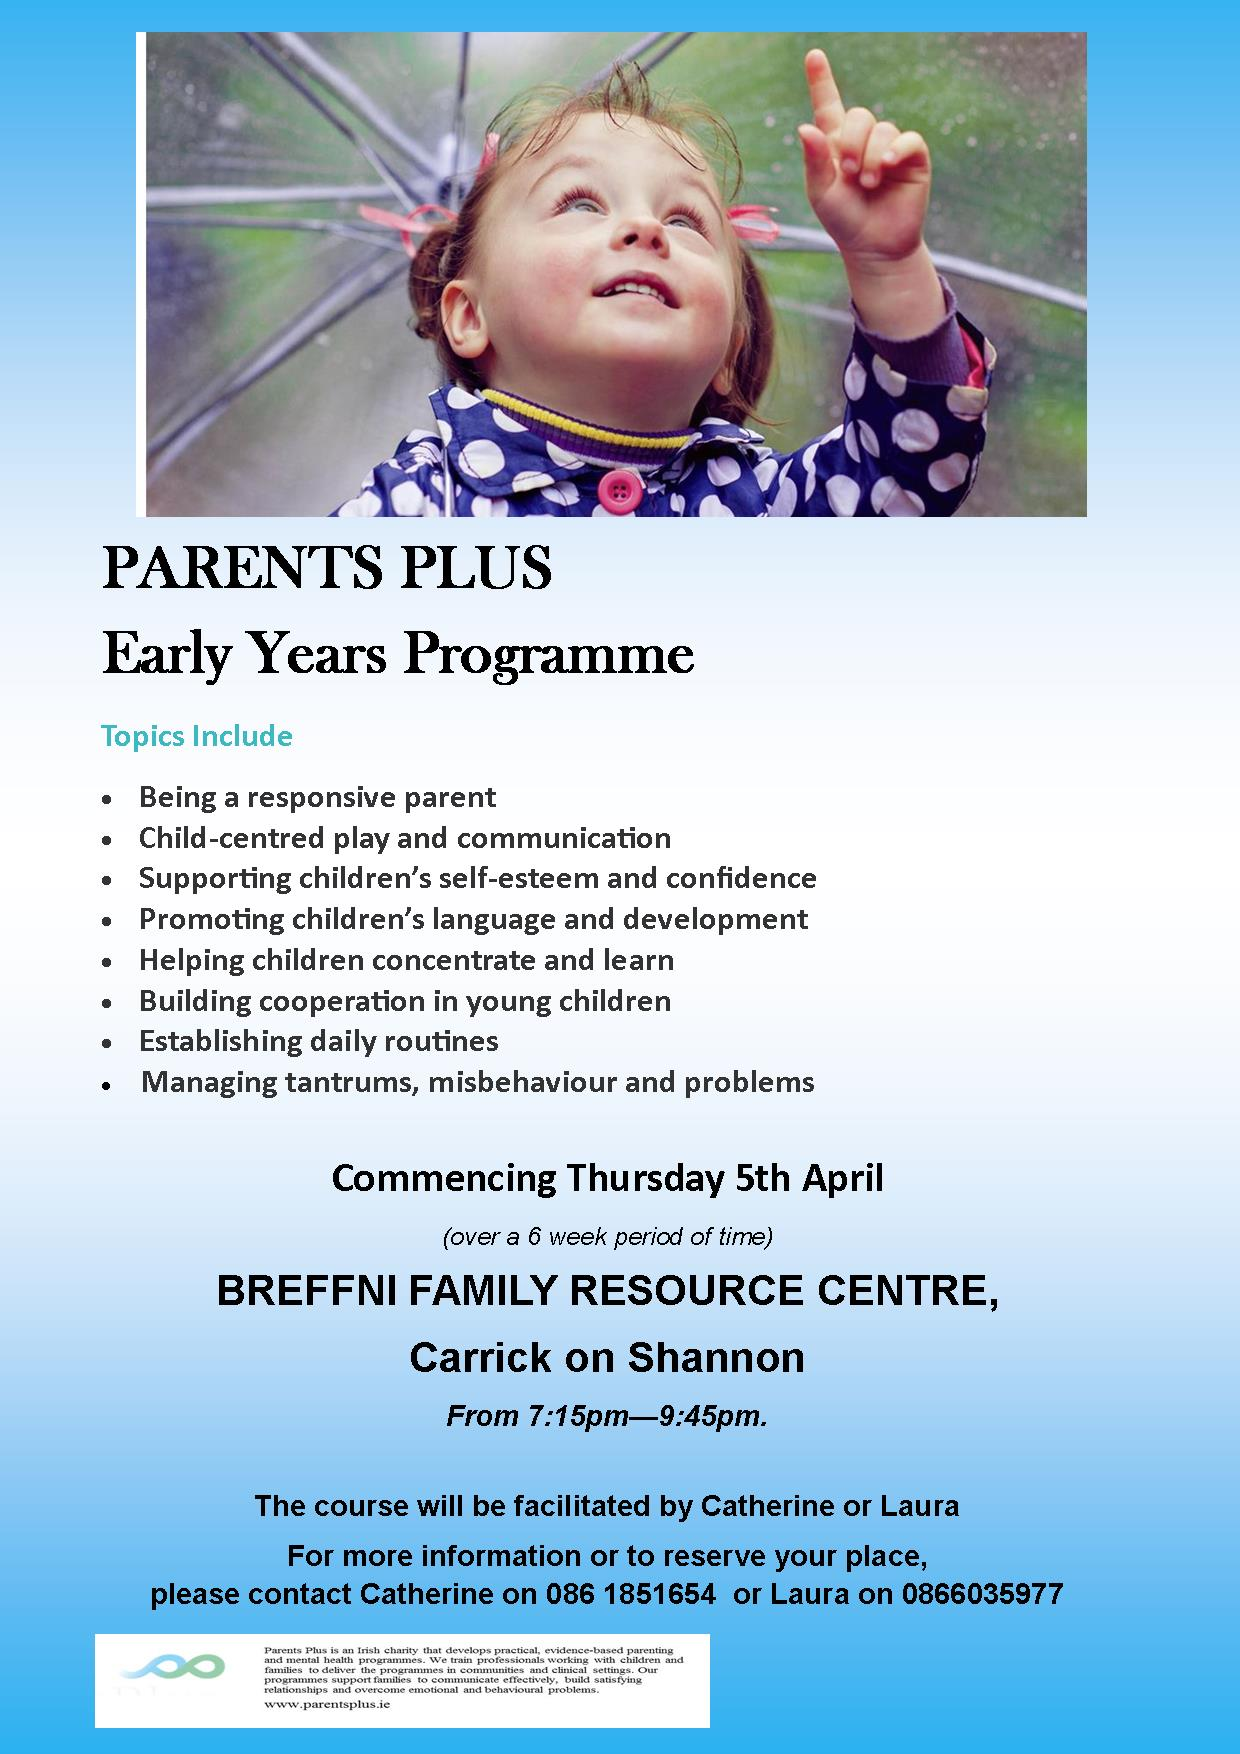 MyCarrick Event - Breffni Family Resource Centre - Early Years Parenting Programme